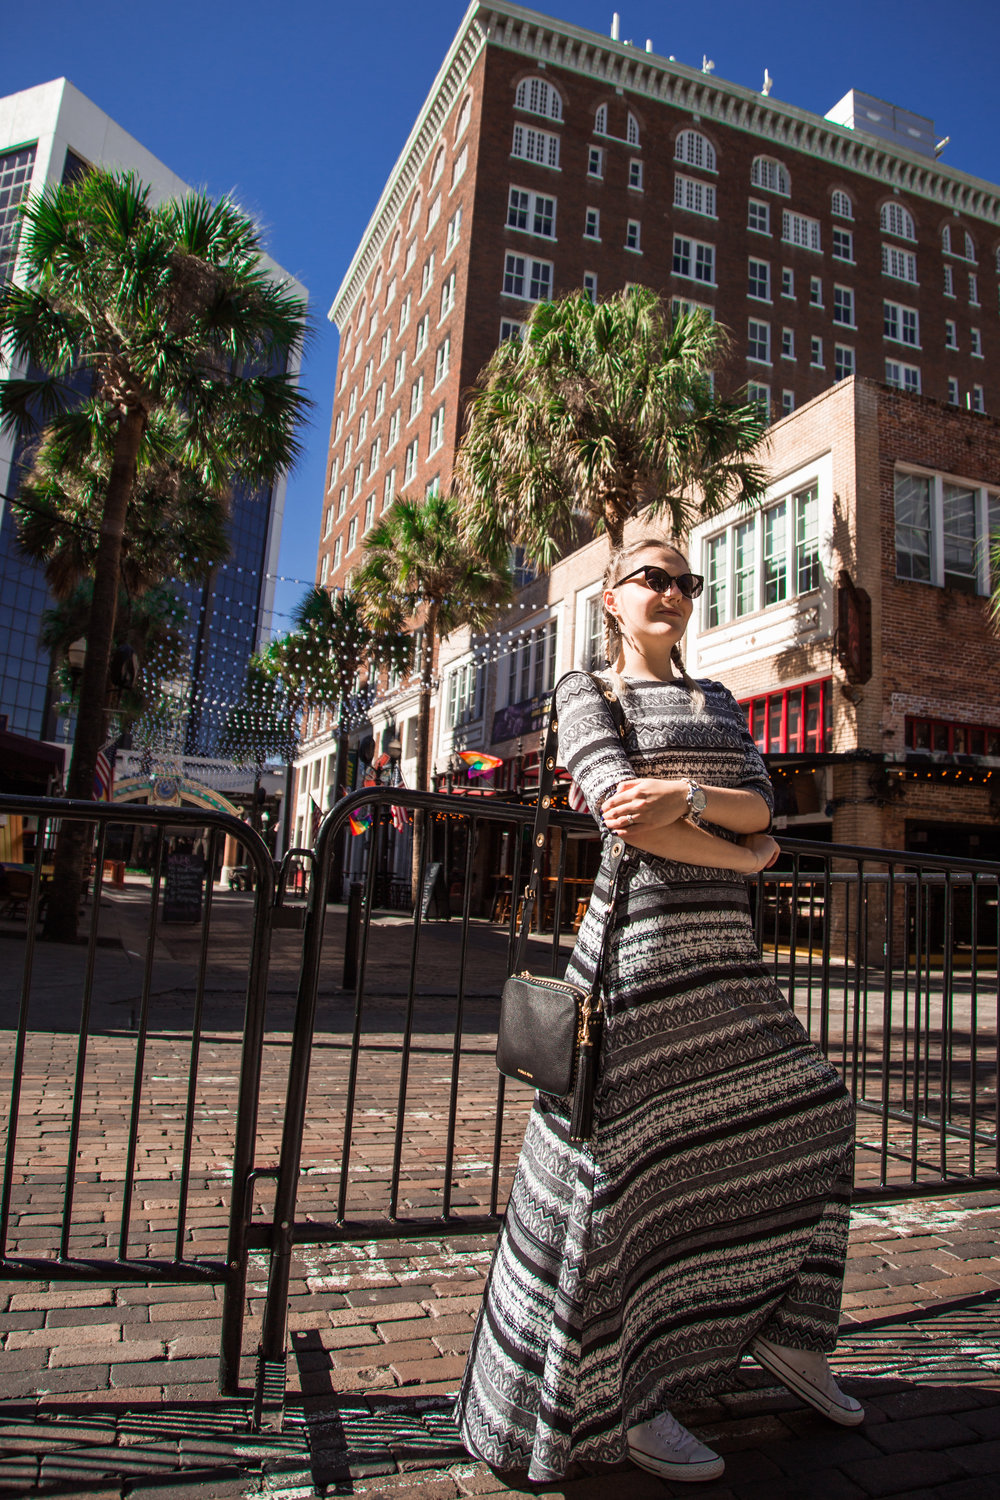 "Me on my birthday day in Orlando, Florida in November 2016. Mr Dorosh was photographing me during all our Downtown walk. I chose flowing cool dress that made me feel ""like a queen"" and Converse shoes that gave me comfort and easy-to-move feeling."